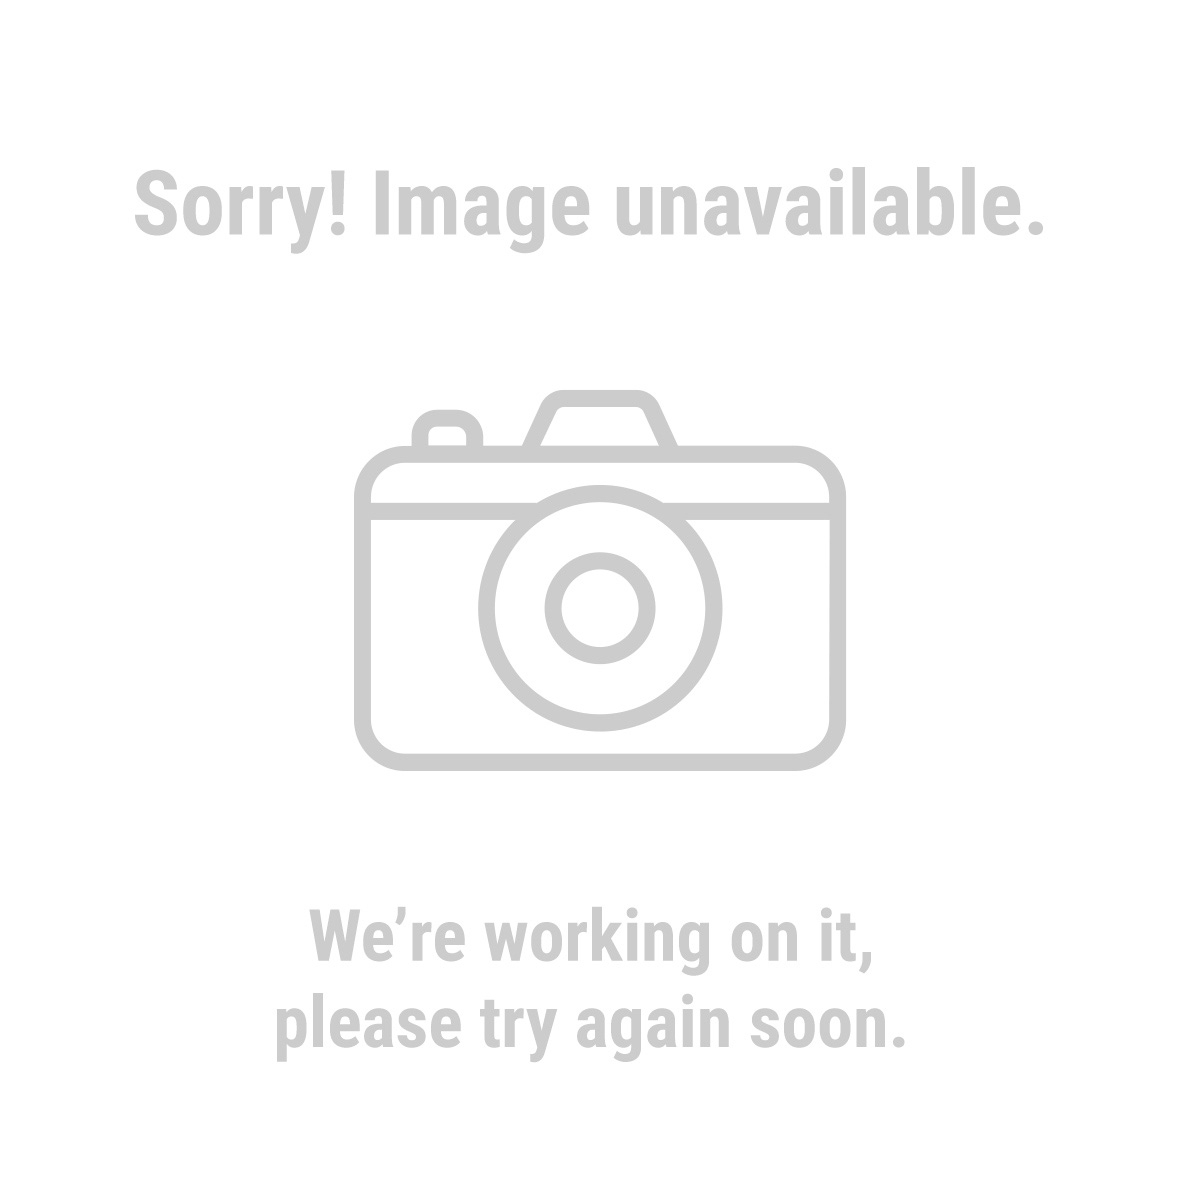 U.S. General® 90428 Large Steel Service Cart with Locking Drawer